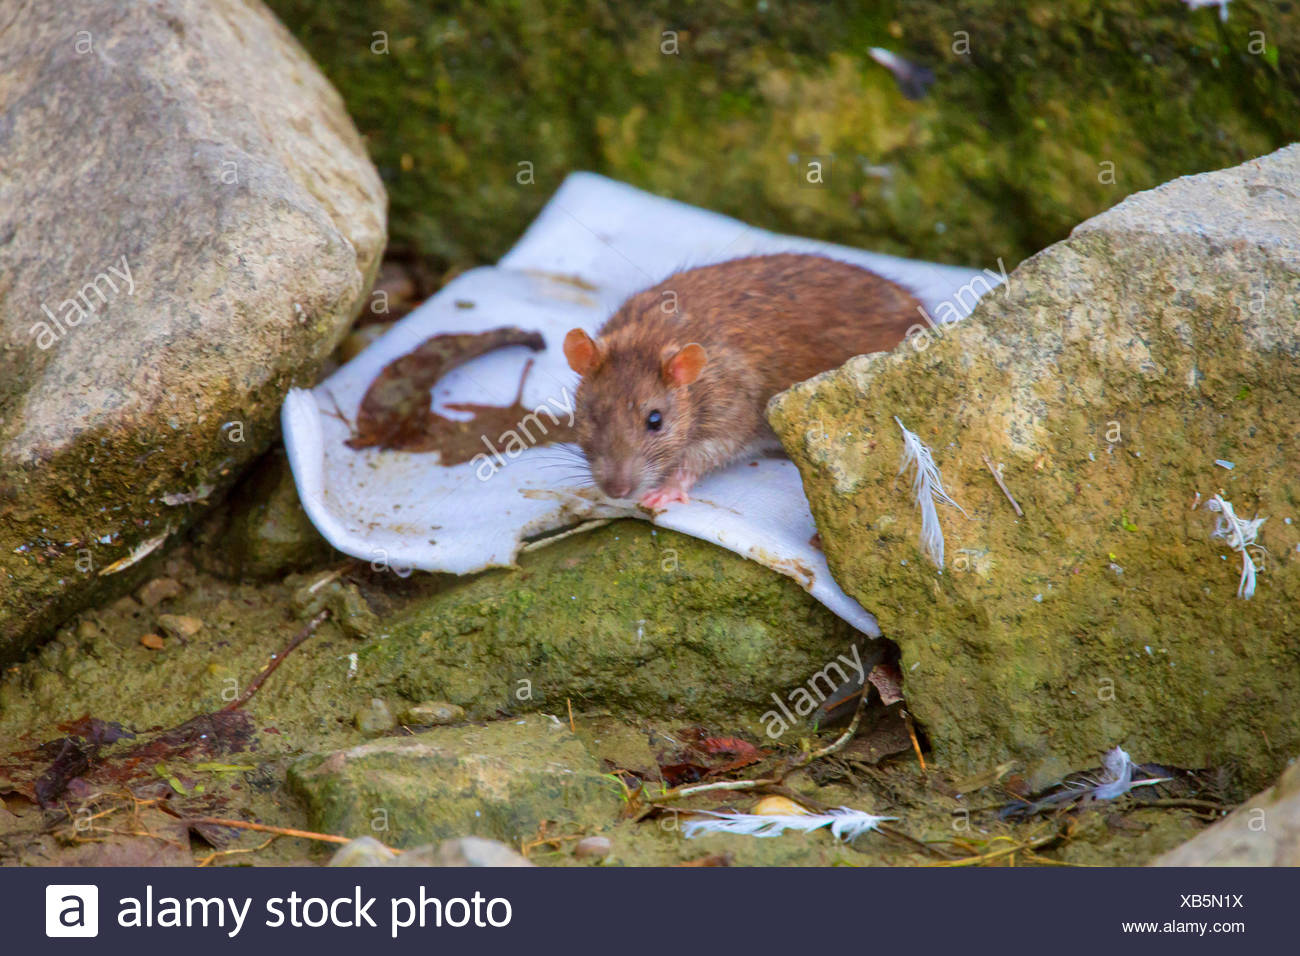 Brown rat, Common brown rat, Norway rat, Common rat (Rattus norvegicus), with only one eye searching food, Germany, Bavaria, Niederbayern, Lower Bavaria - Stock Image